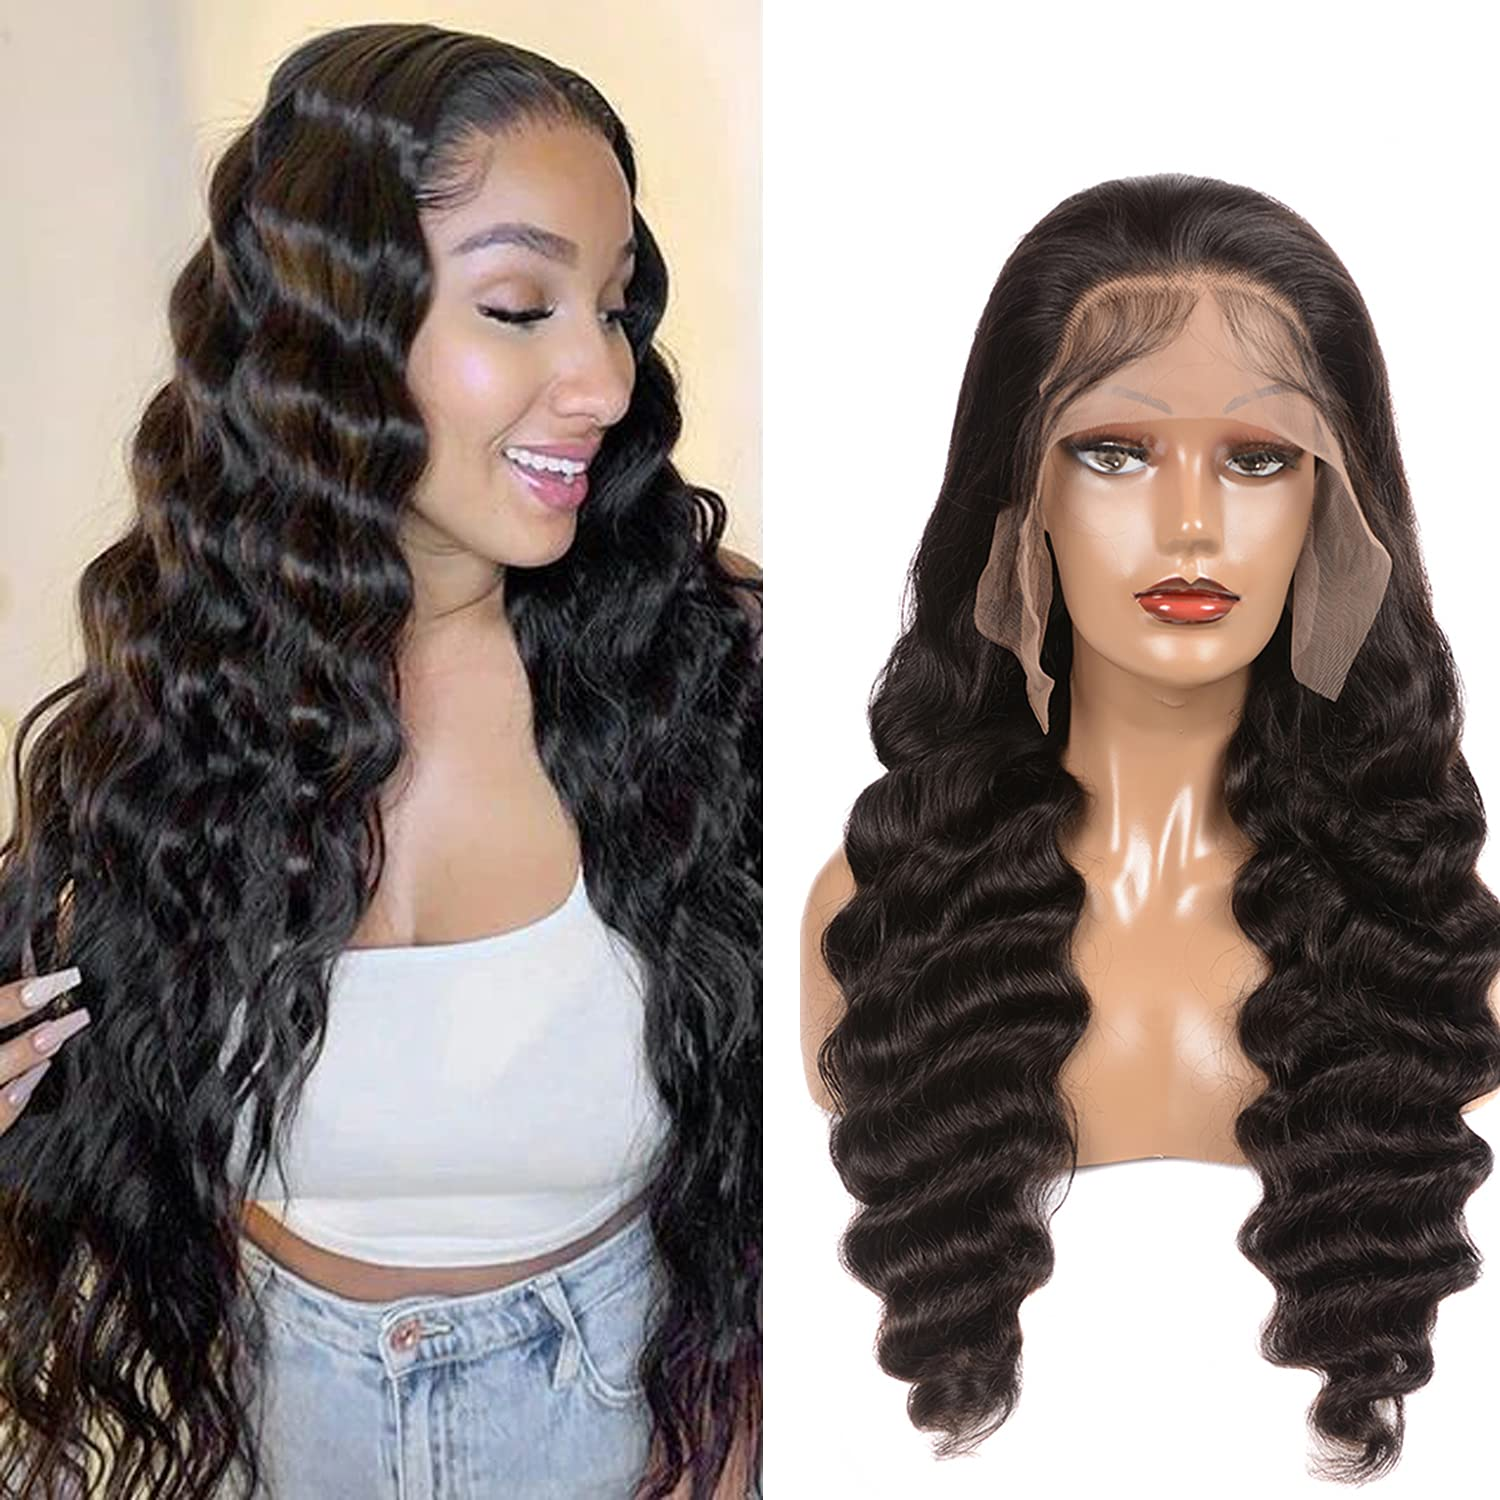 HD Lace Front Wigs Human Wave Deep Loose 百貨店 訳あり商品 Frontal Hair